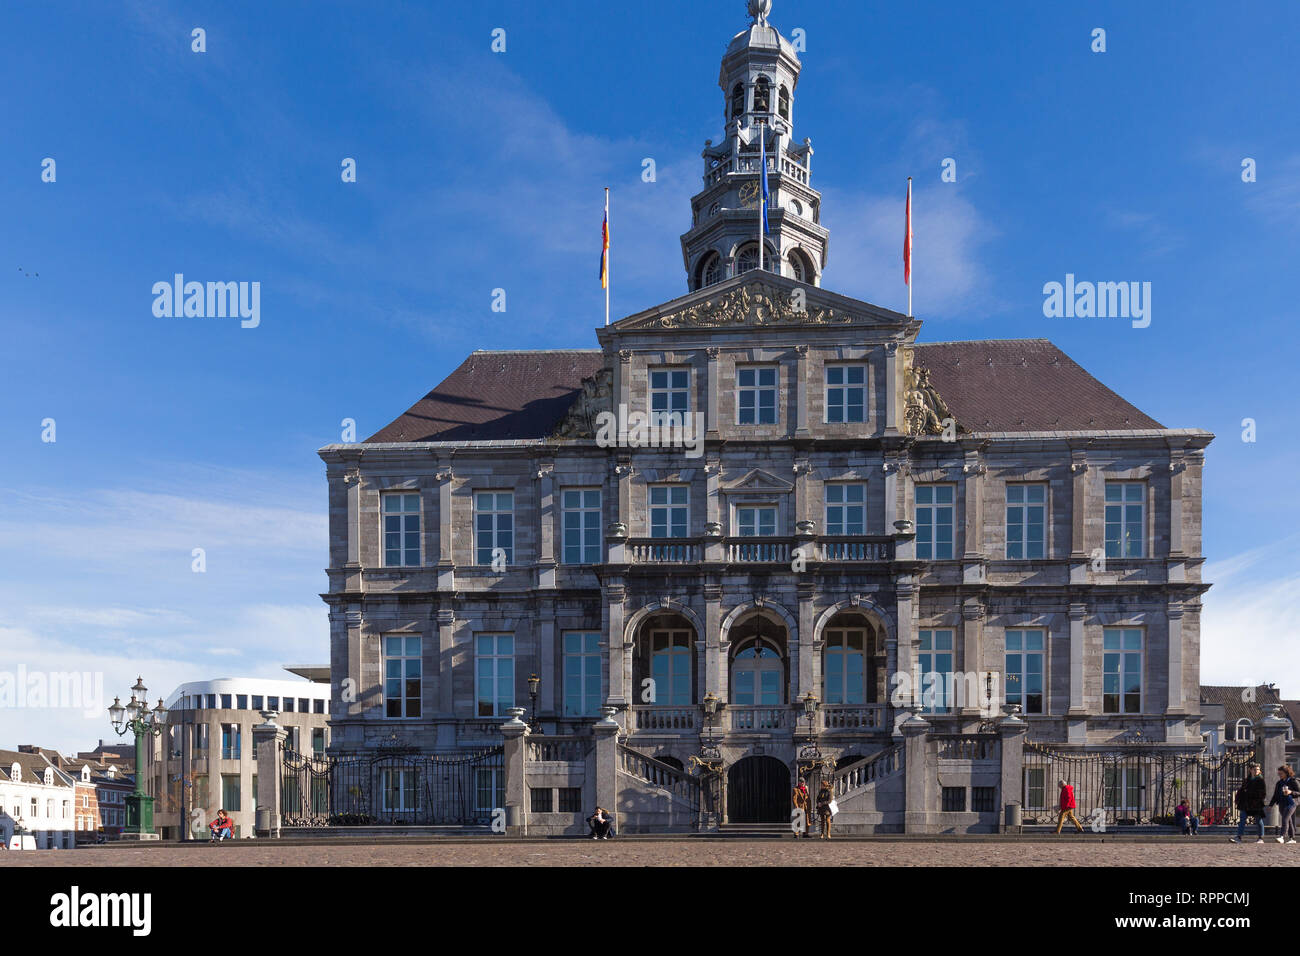 Maastricht City hall at the market square. is a symmetric building from the 17th century - Stock Image